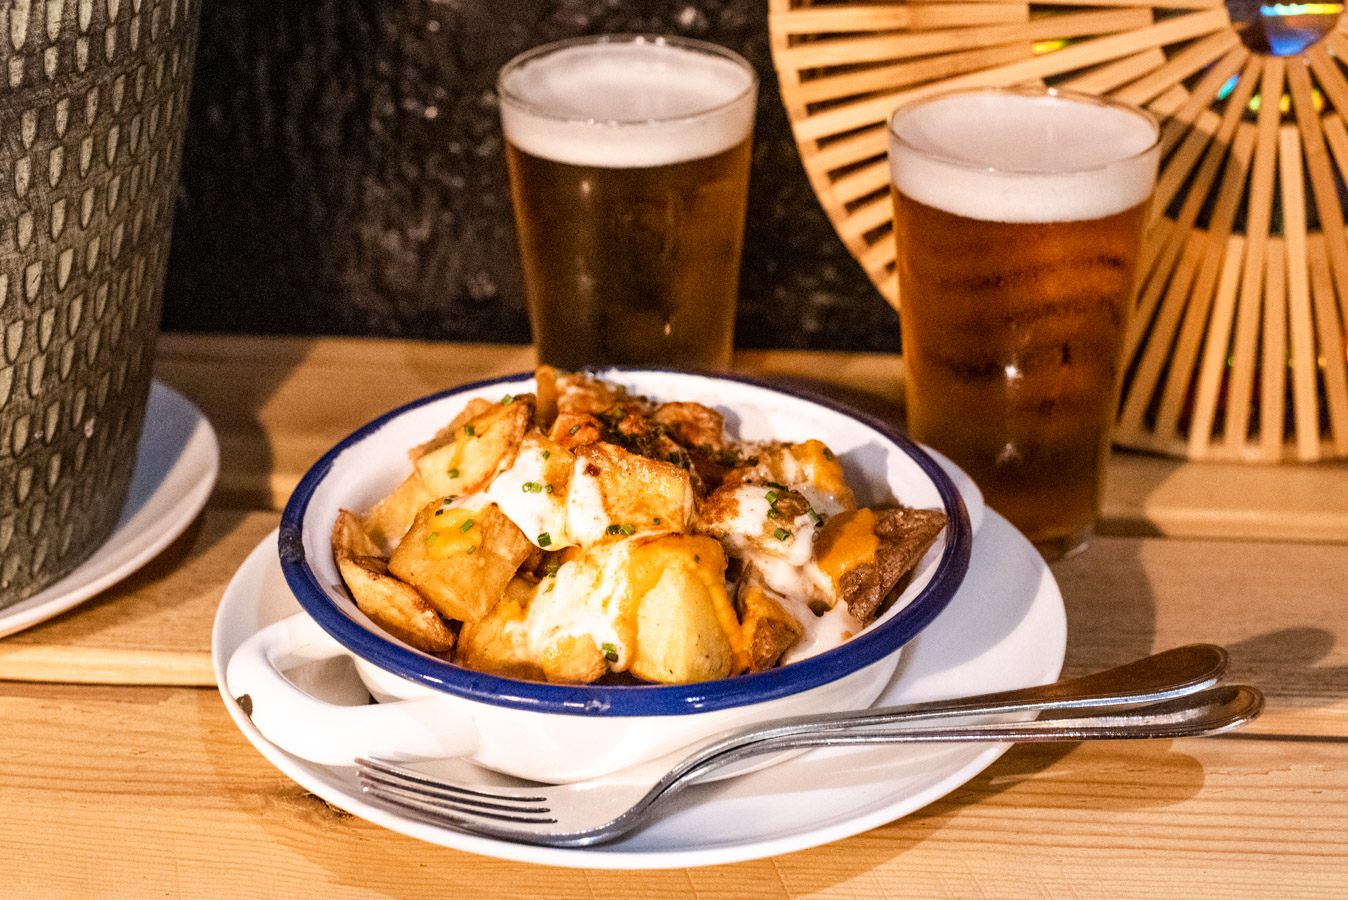 Patatas Bravas is a delicious dish eaten by the locals in Barcelona